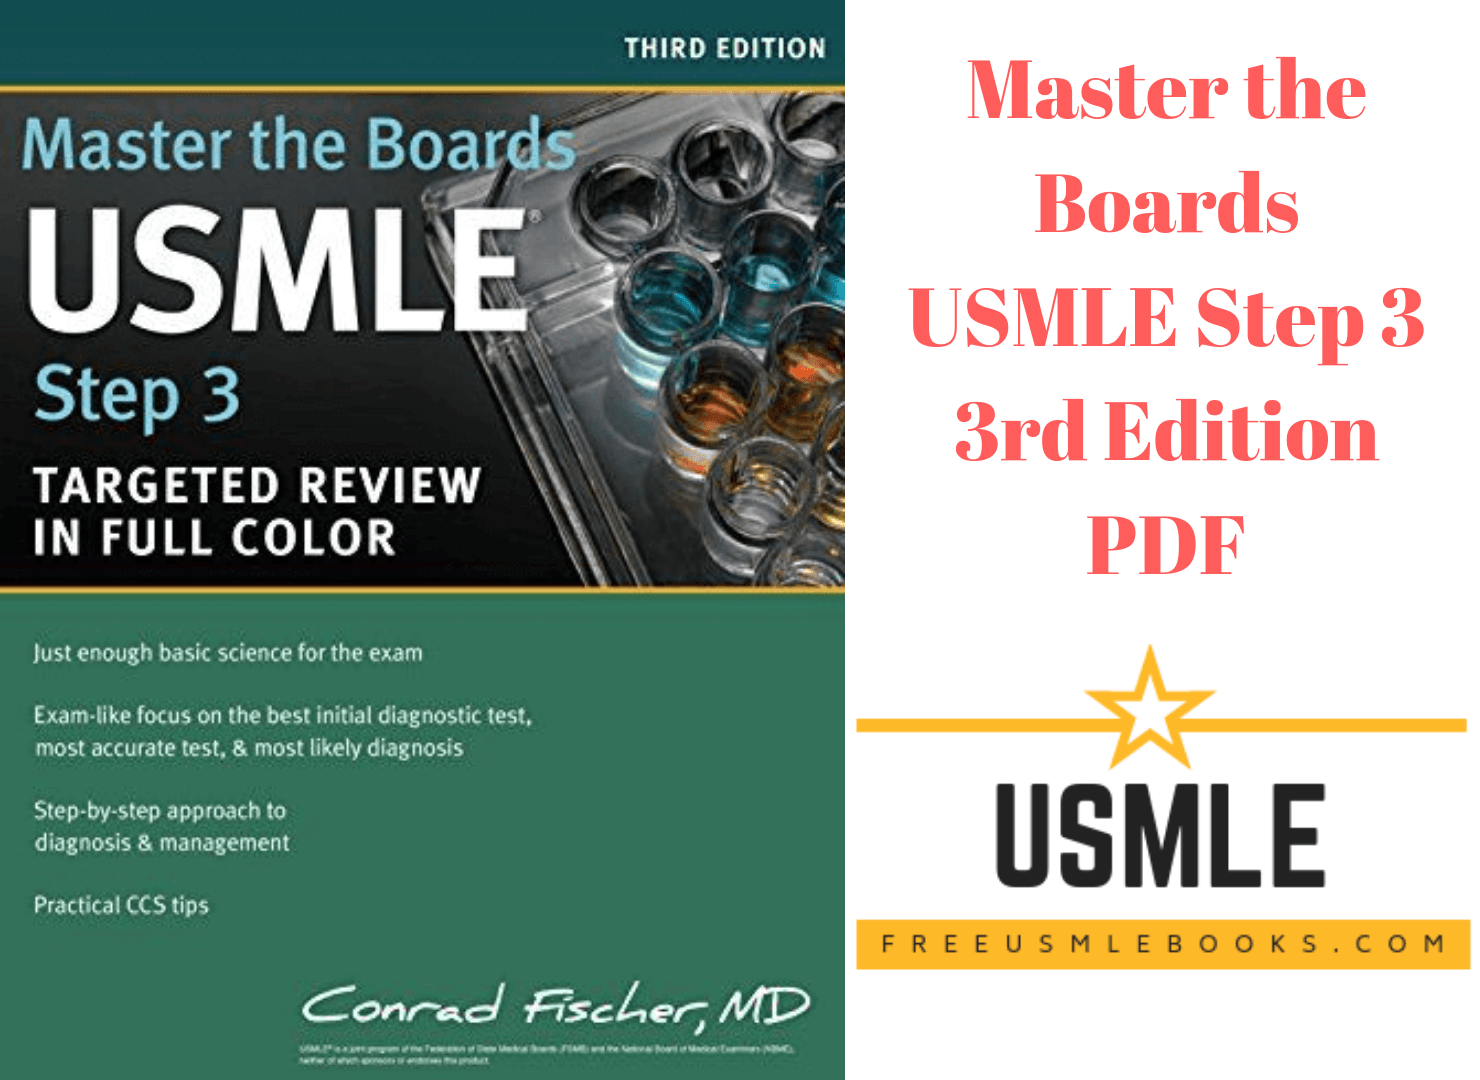 Download Master the Boards USMLE Step 3 3rd Edition PDF Free